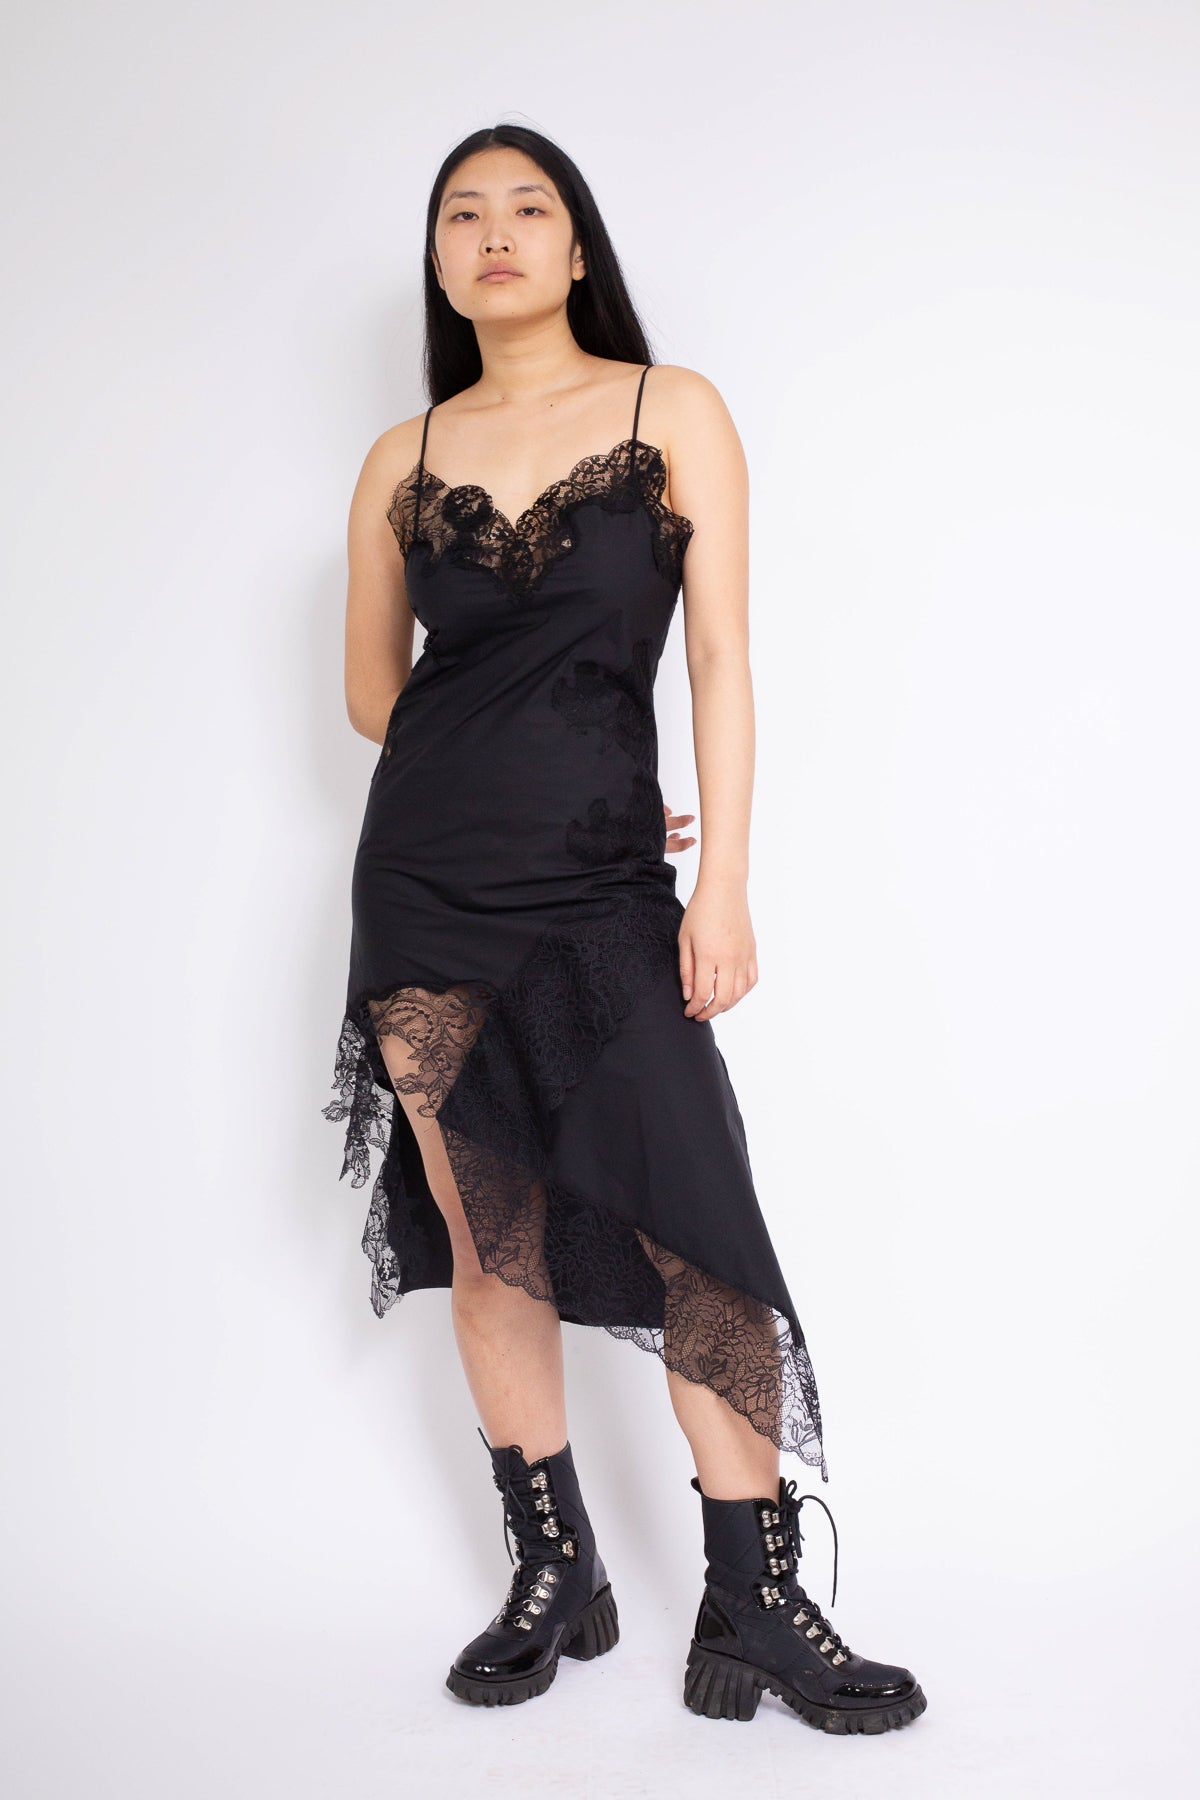 LACE INSERT SLIP DRESS IN BLACK - marques-almeida-dev